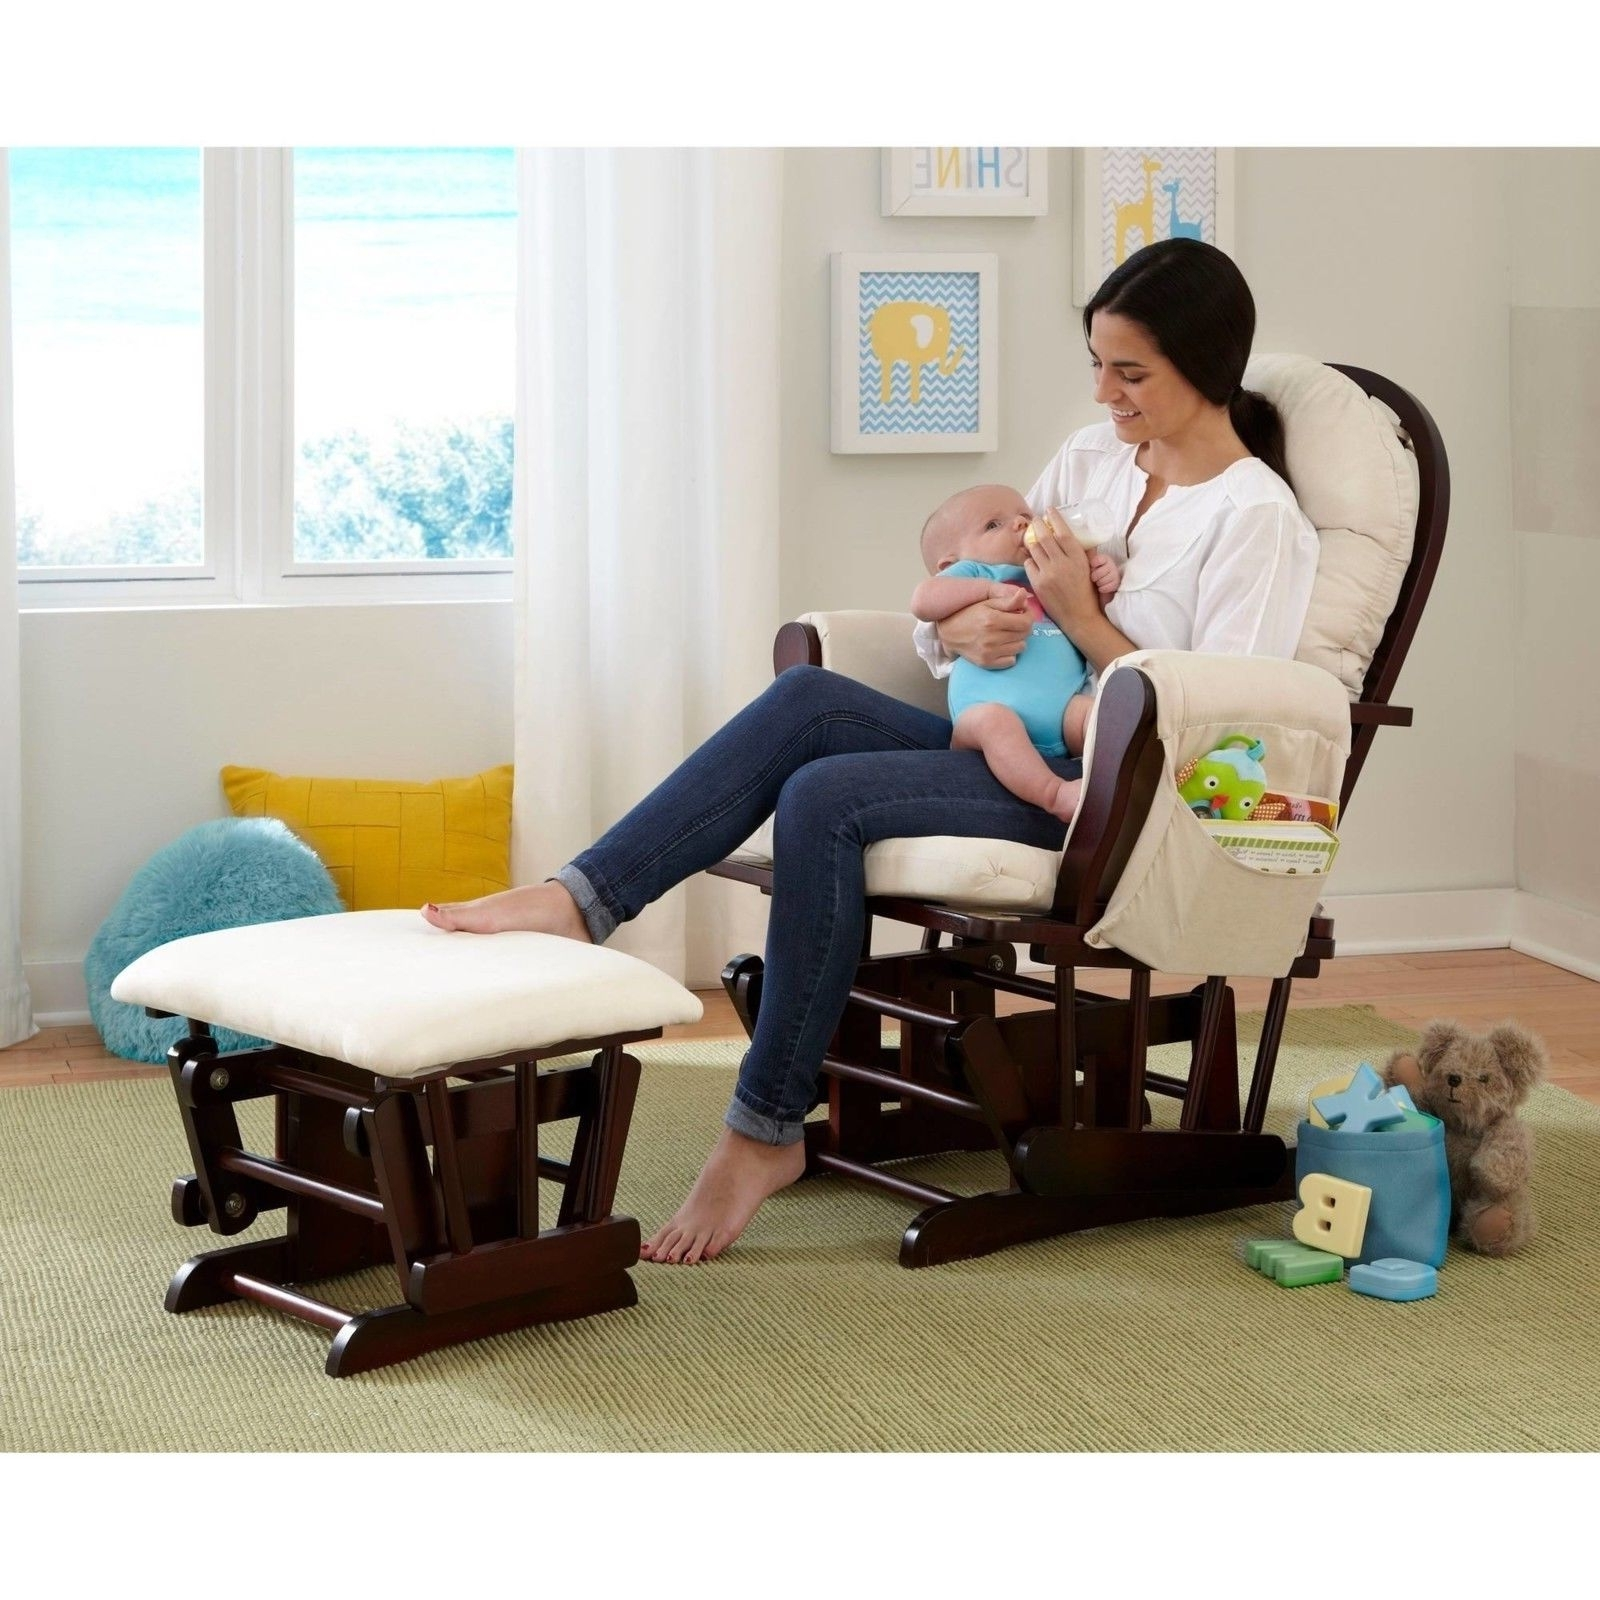 Well Known Glider Rocker Chair And Ottoman Baby Nursery Furniture Rocking Relax Regarding Rocking Chairs For Baby Room (View 20 of 20)